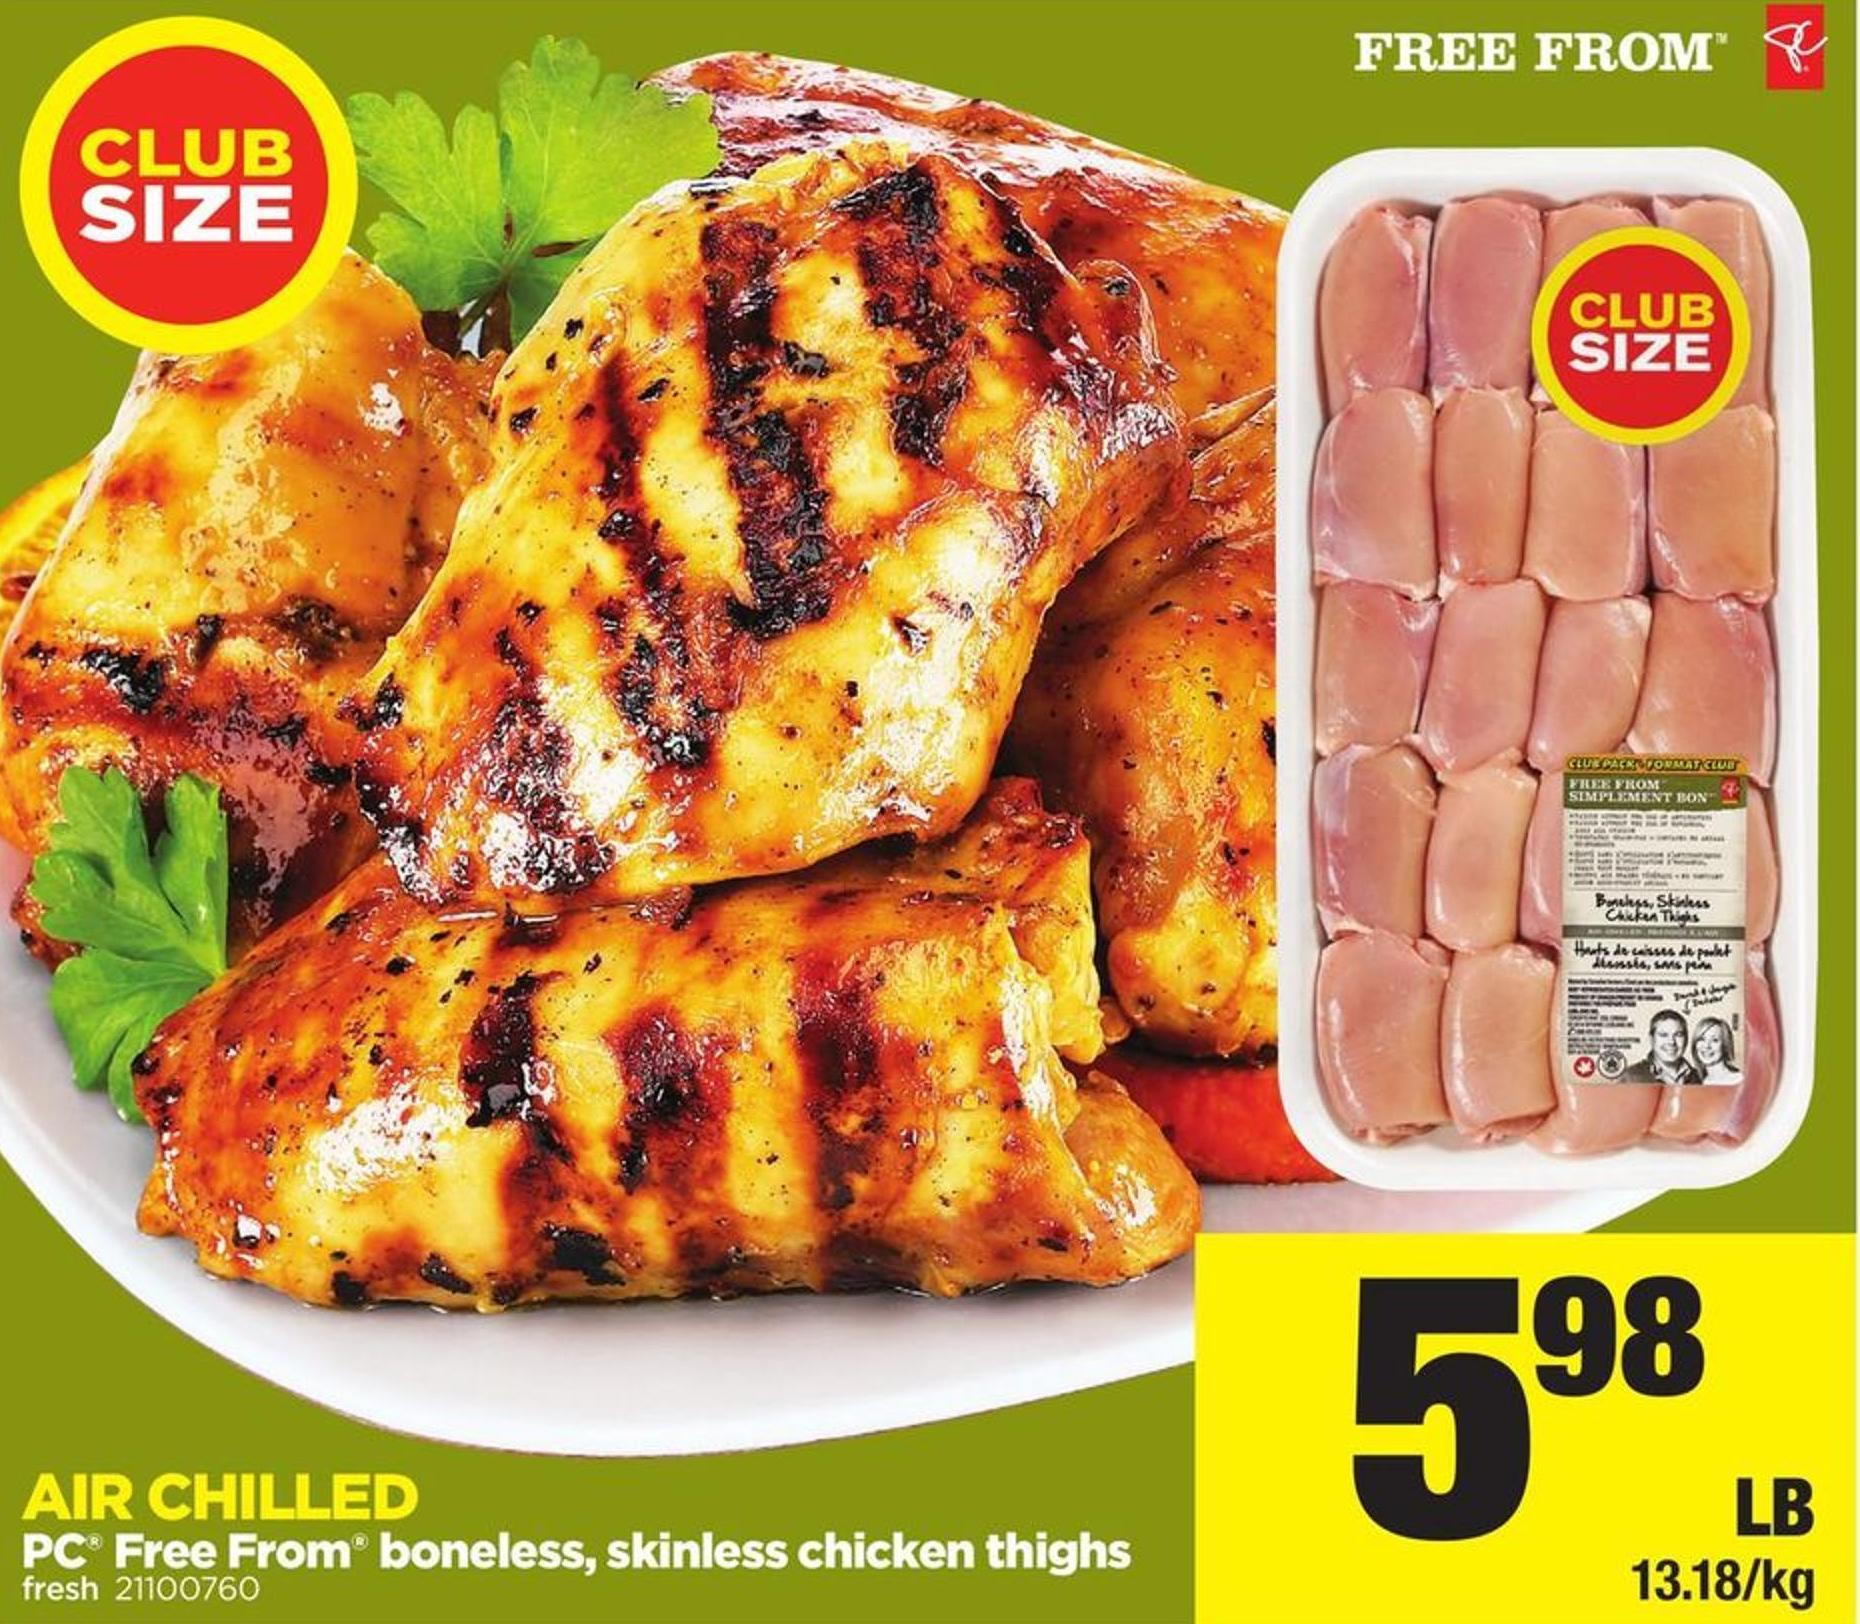 PC Free From Boneless - Skinless - Chicken Thighs